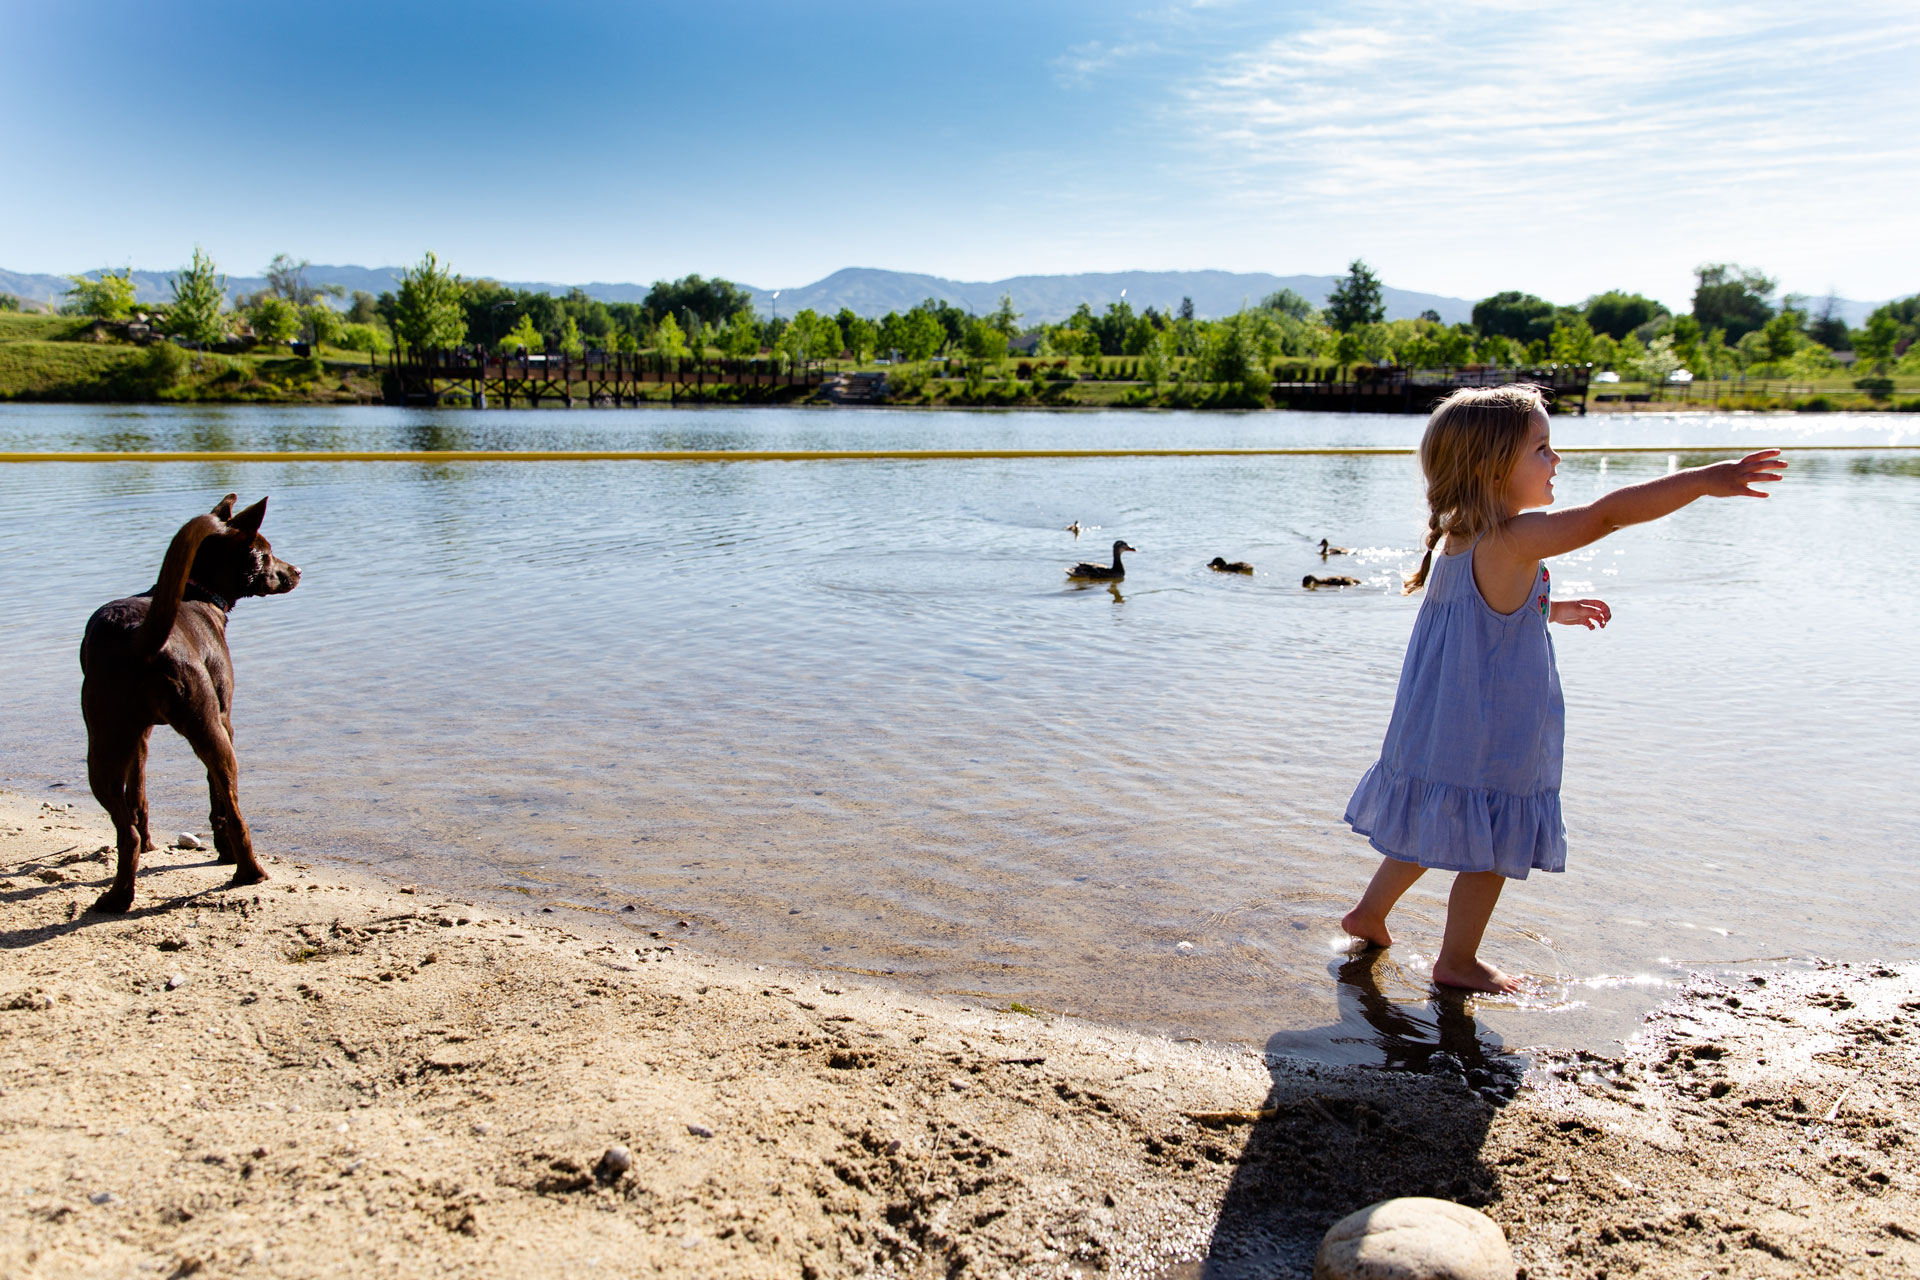 Little girl and dog standing next to the lake looking at the ducks